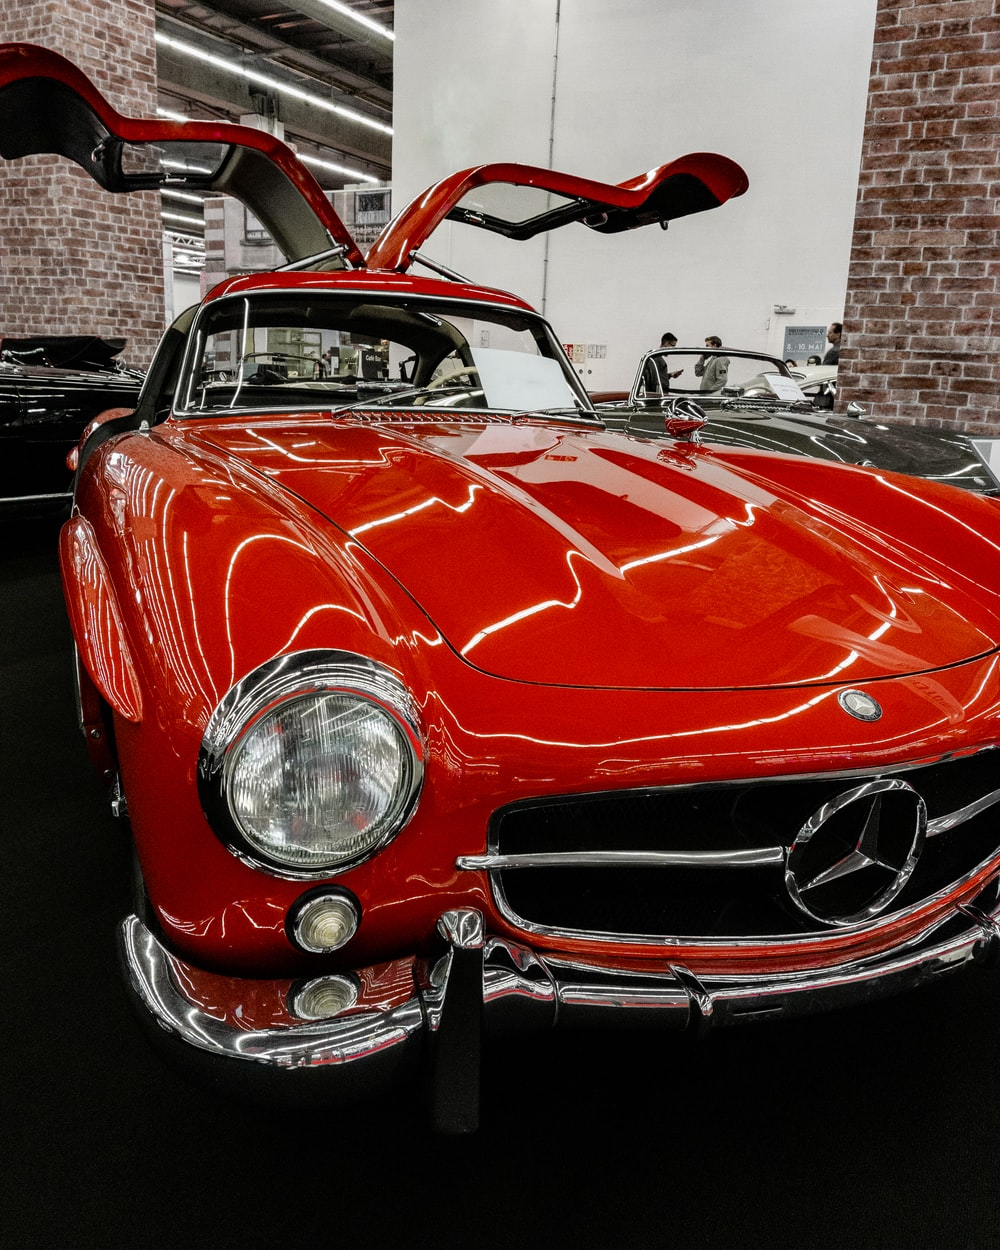 red Mercedes-Benz vehicle